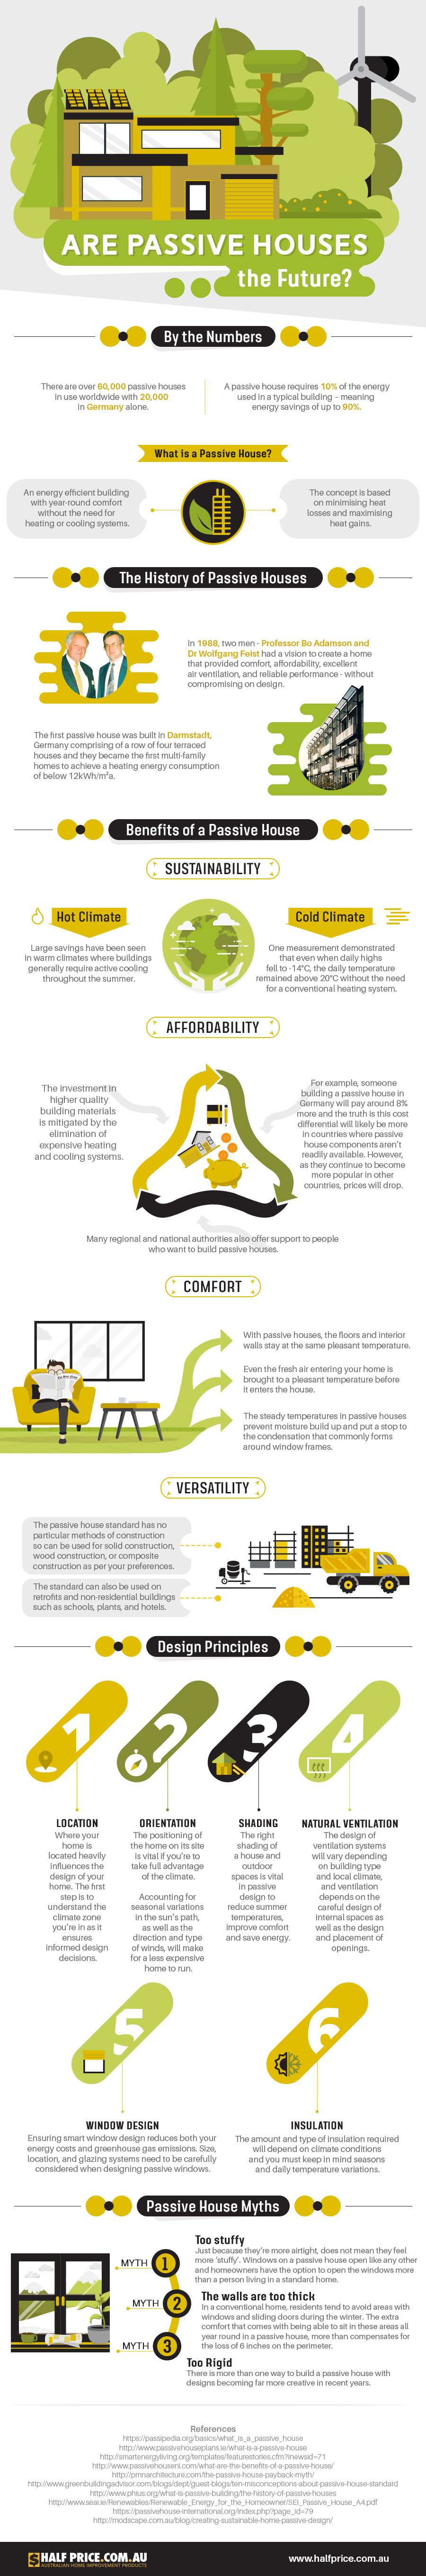 Working with Nature: How Passive Houses Support the Environment - Infographic